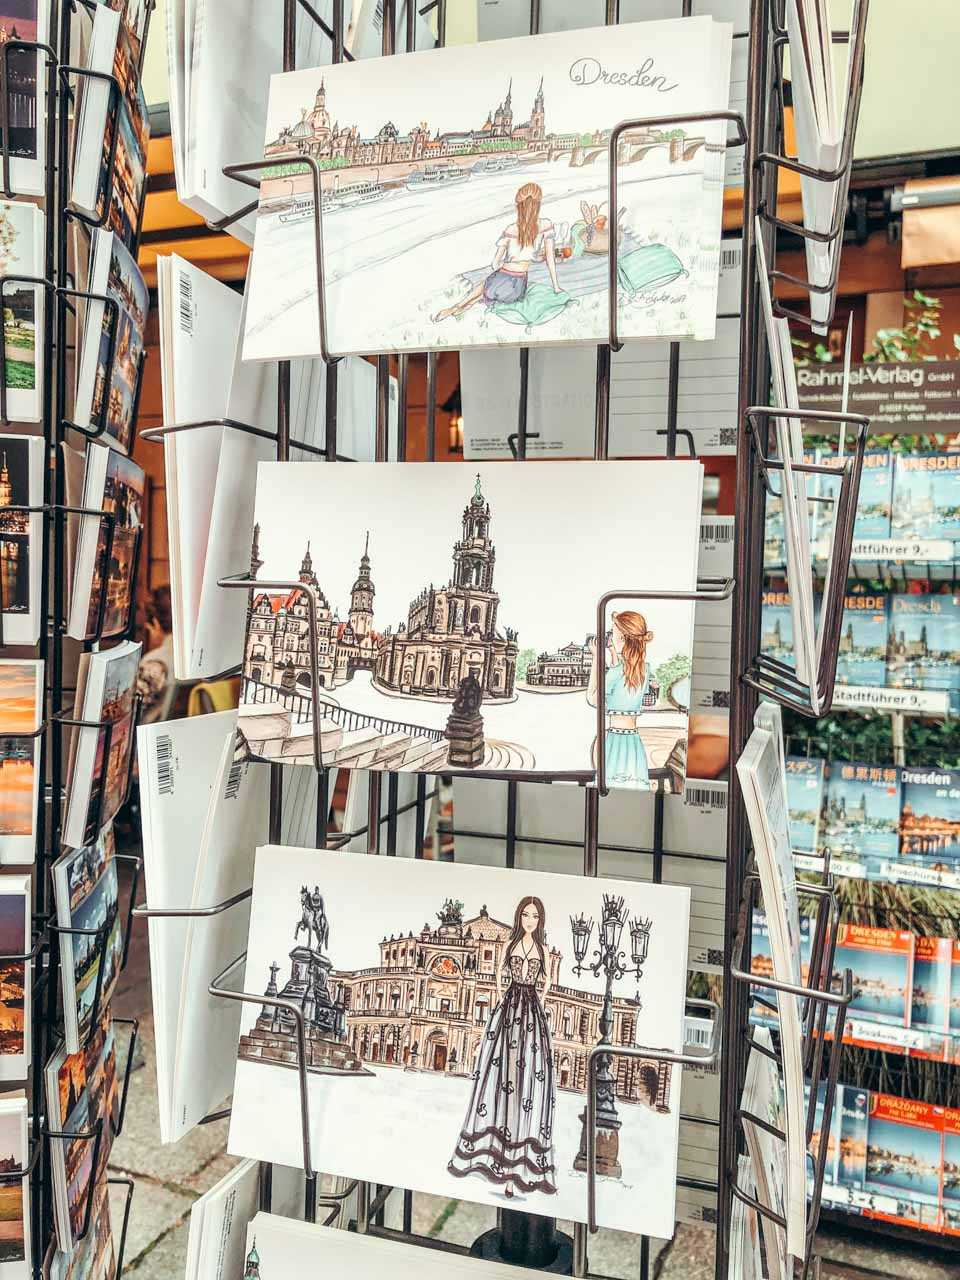 A stand with hand-painted postcards at a souvenir shop in Dresden, Germany